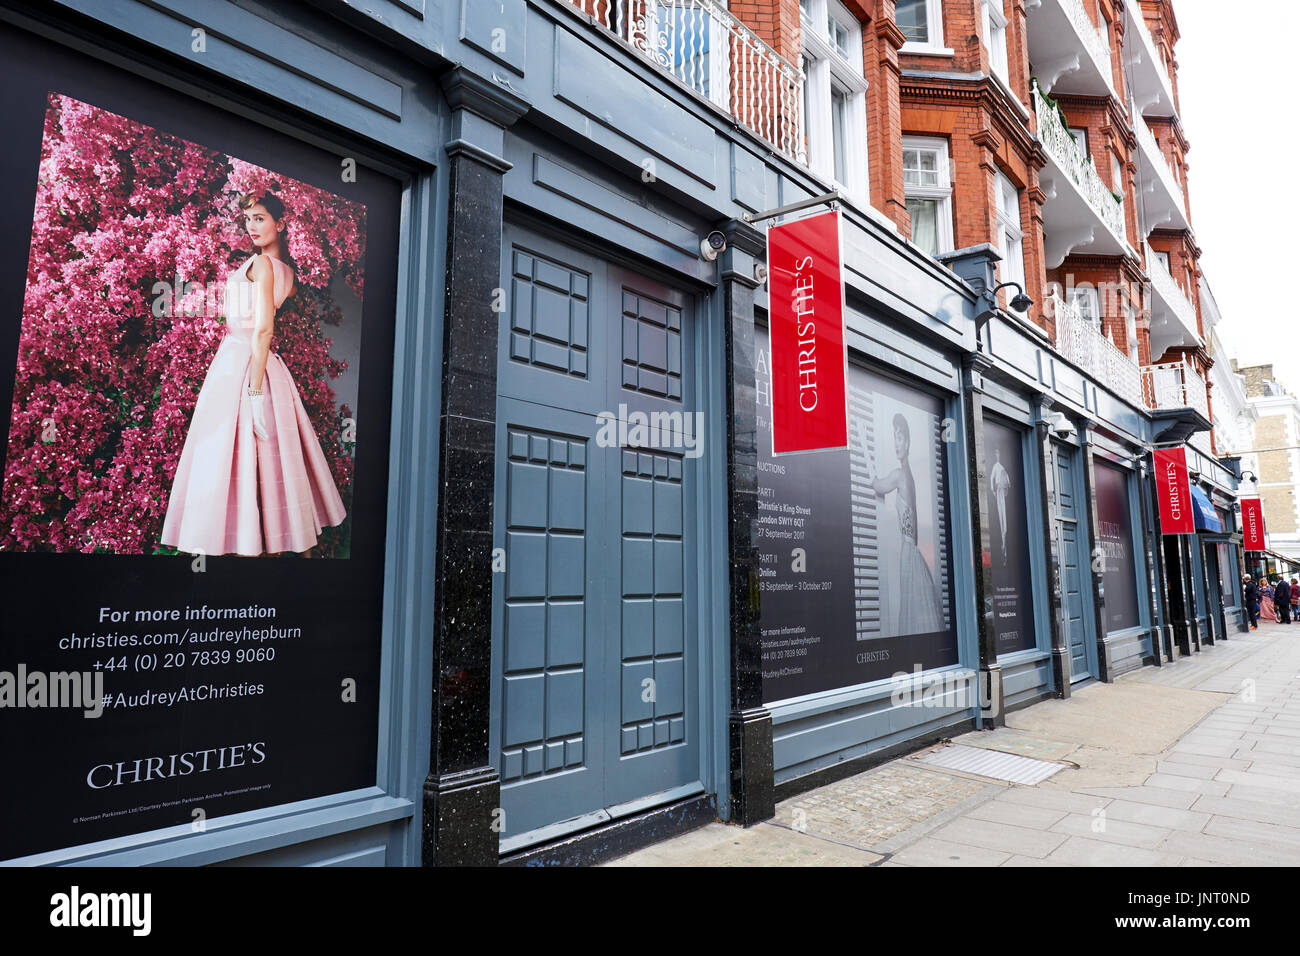 Christies Auctioneers, Old Brompton Road, South Kensington, London, UK - Stock Image